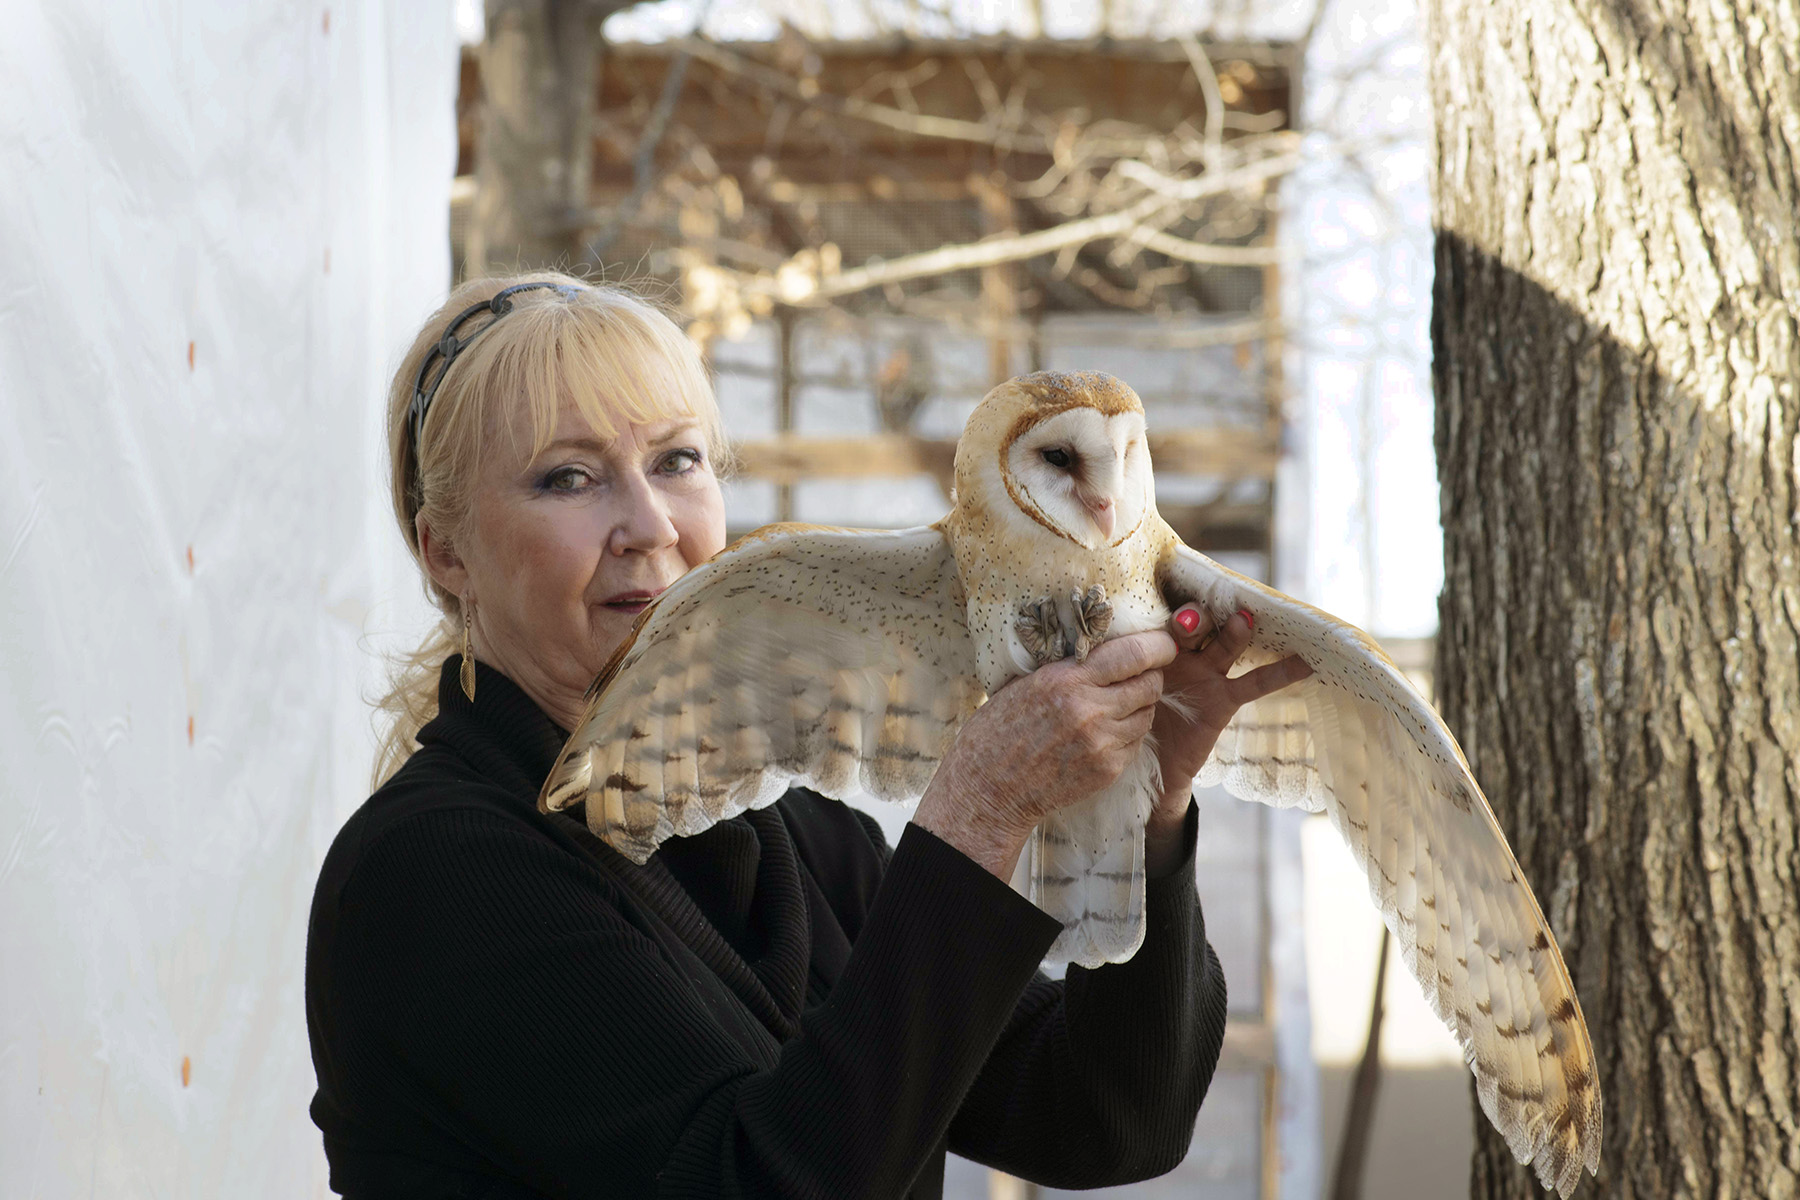 kathy roger and owl